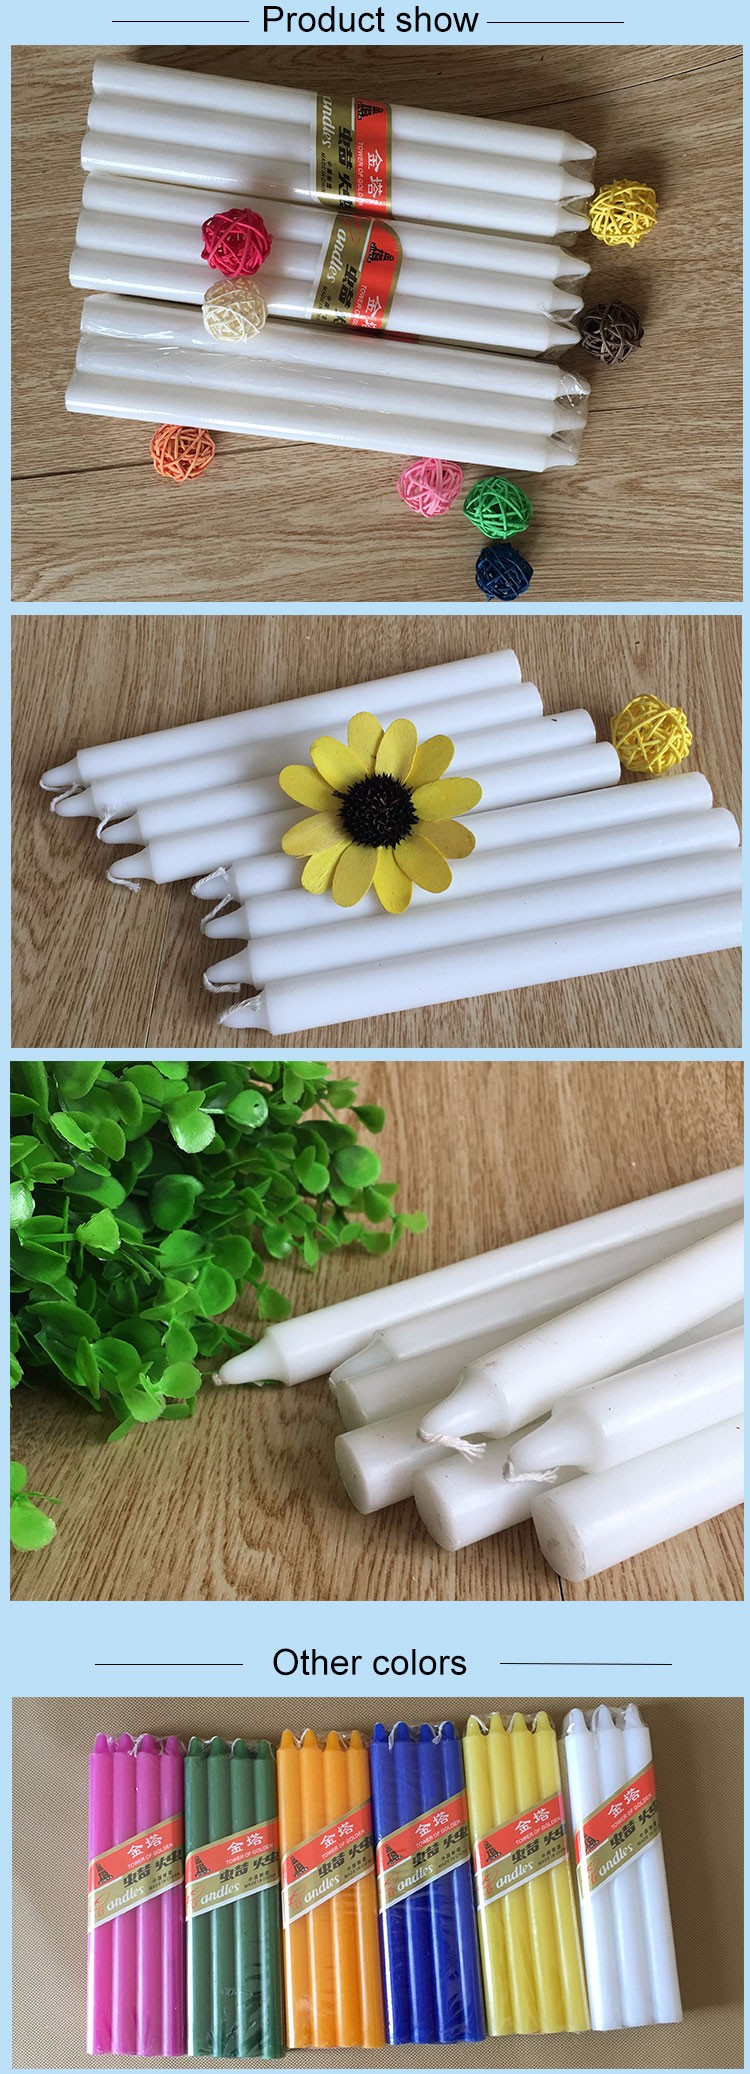 Polybag Fluted Candle